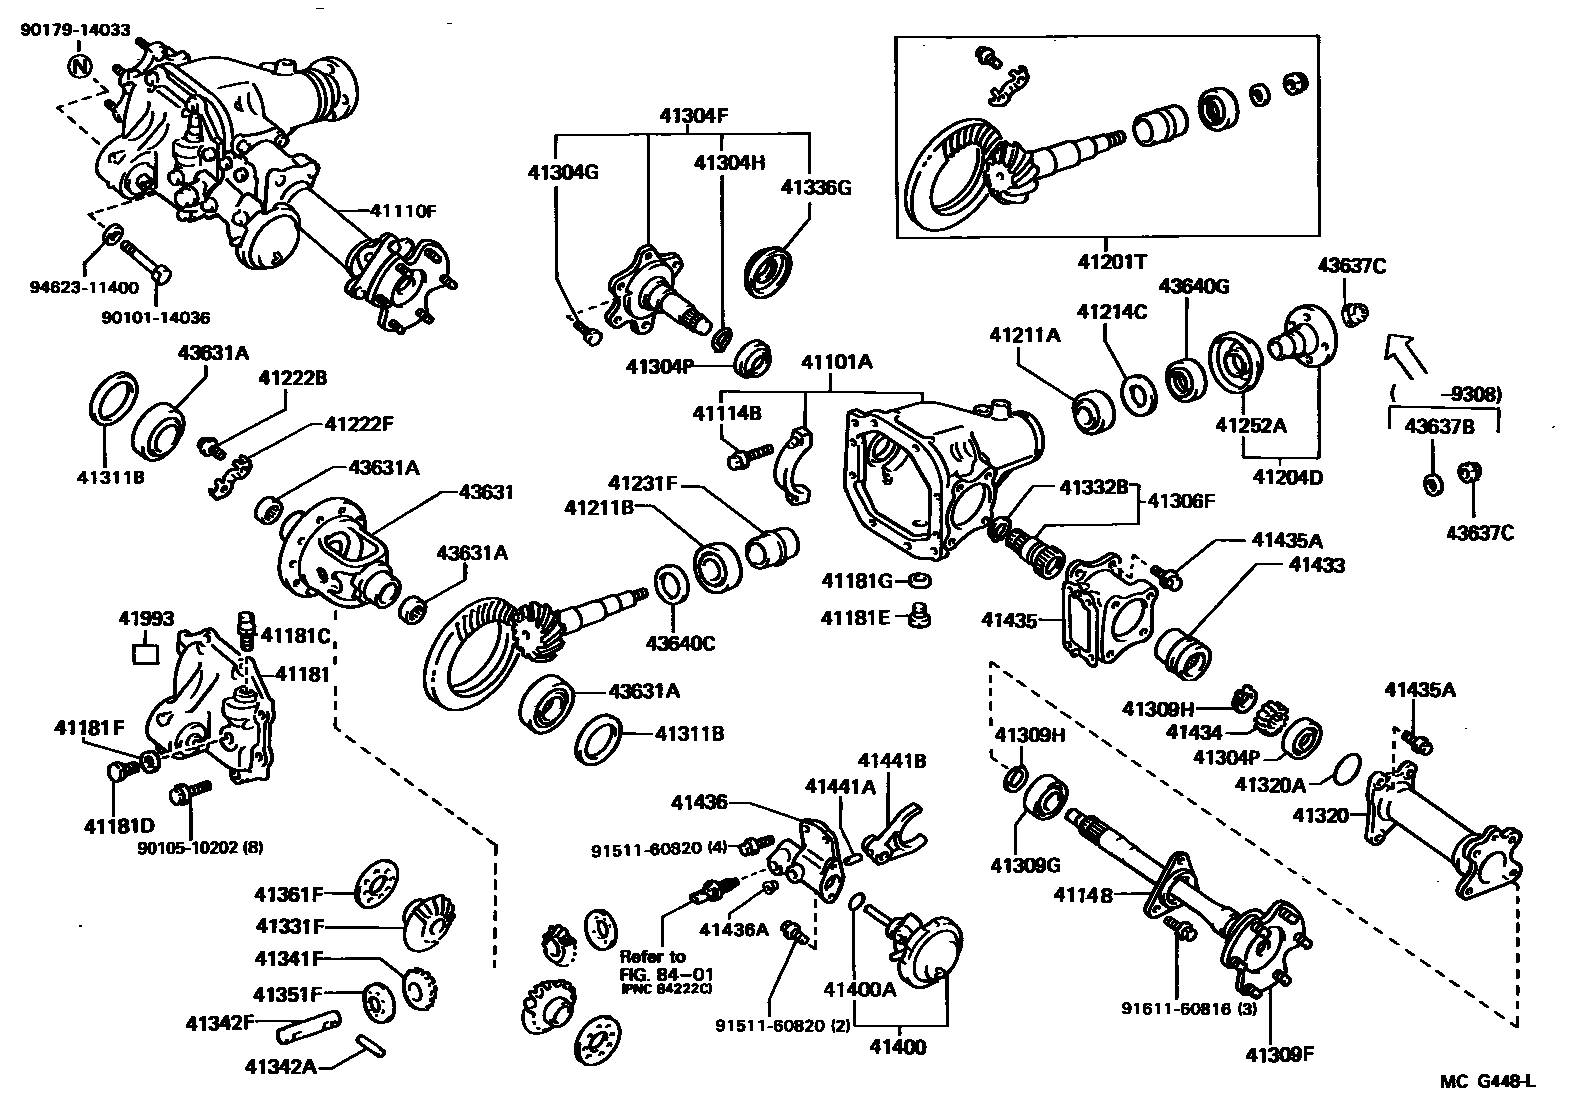 how much play is typical on a side gear shaft toyota 4runner rh toyota 4runner org 85 toyota front axle diagram 1982 toyota front axle diagram